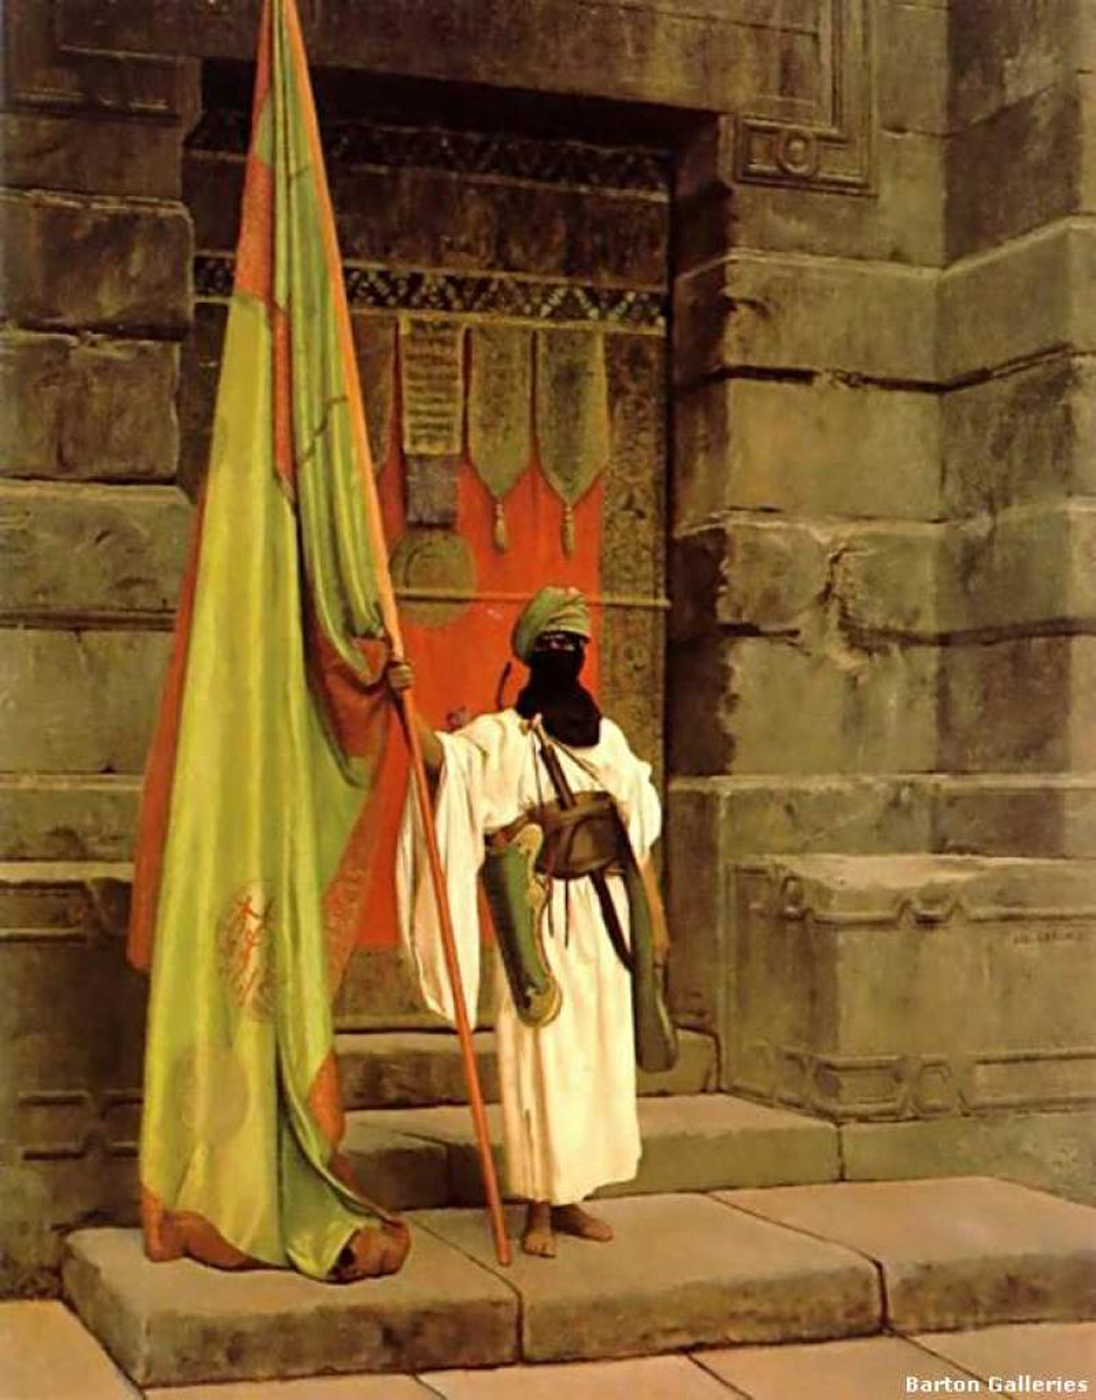 Exceptionnel The Standard Bearer - Gerome, Jean-Leon - Gallery - Web gallery of art NW96